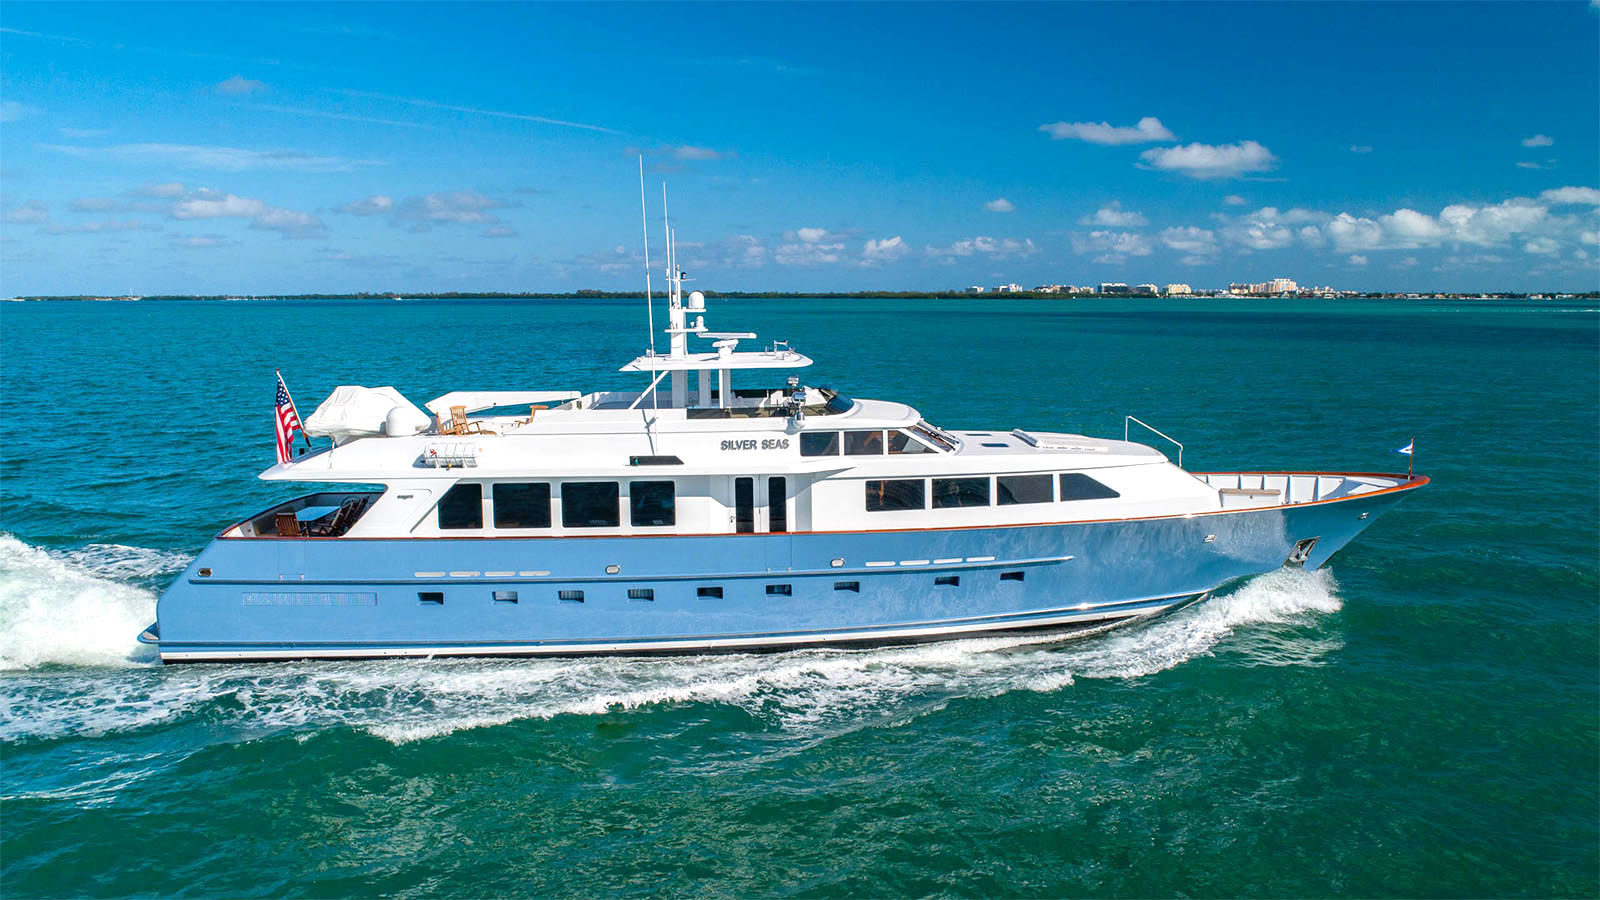 SILVER SEAS Yacht for Charter - IYC